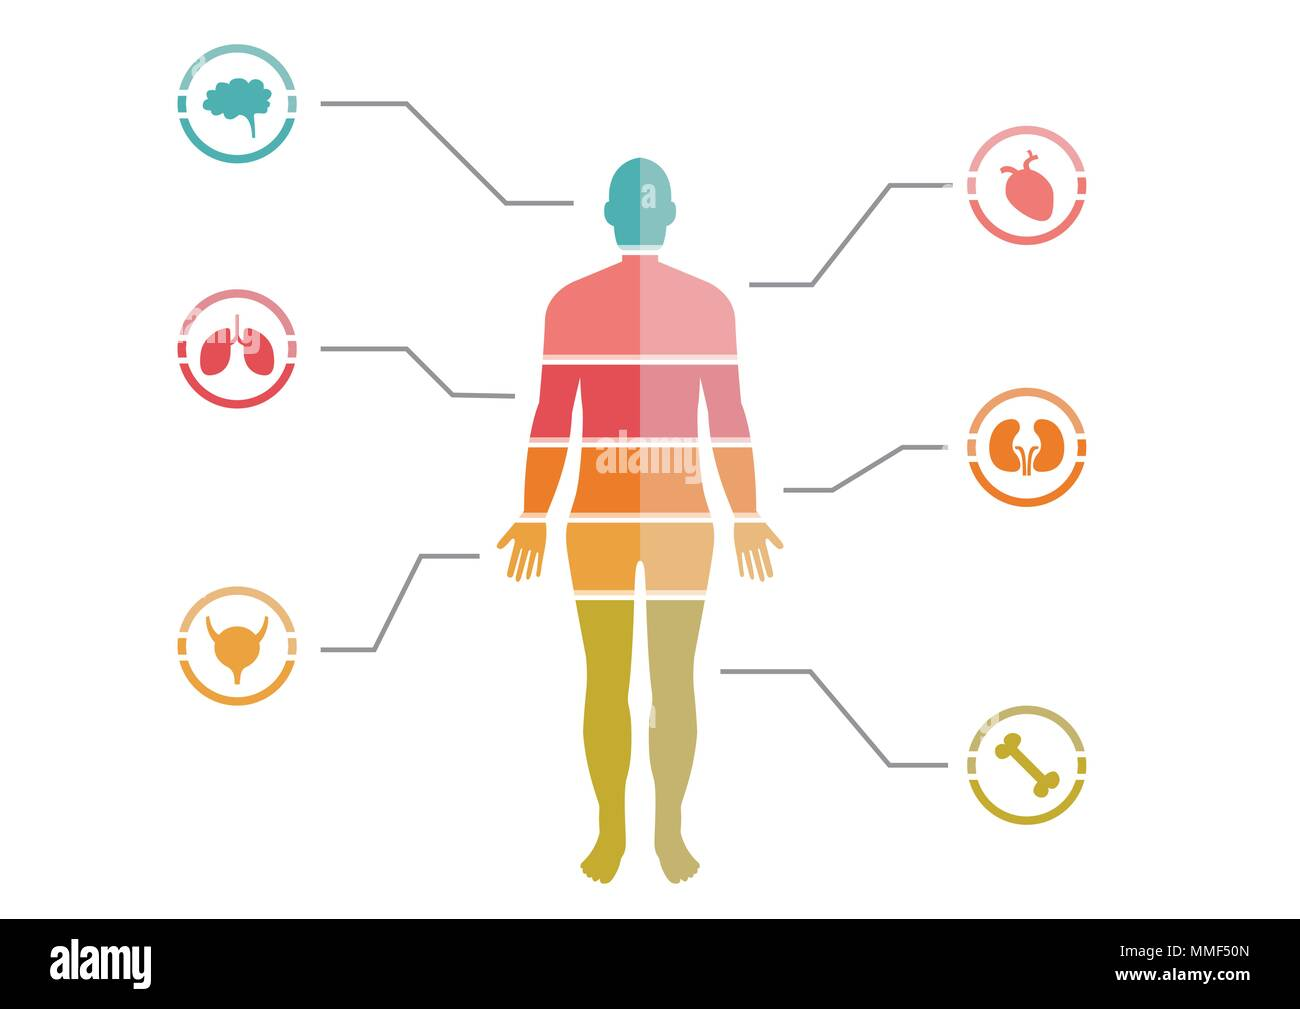 Colorful Human Body Chart - Stock Image